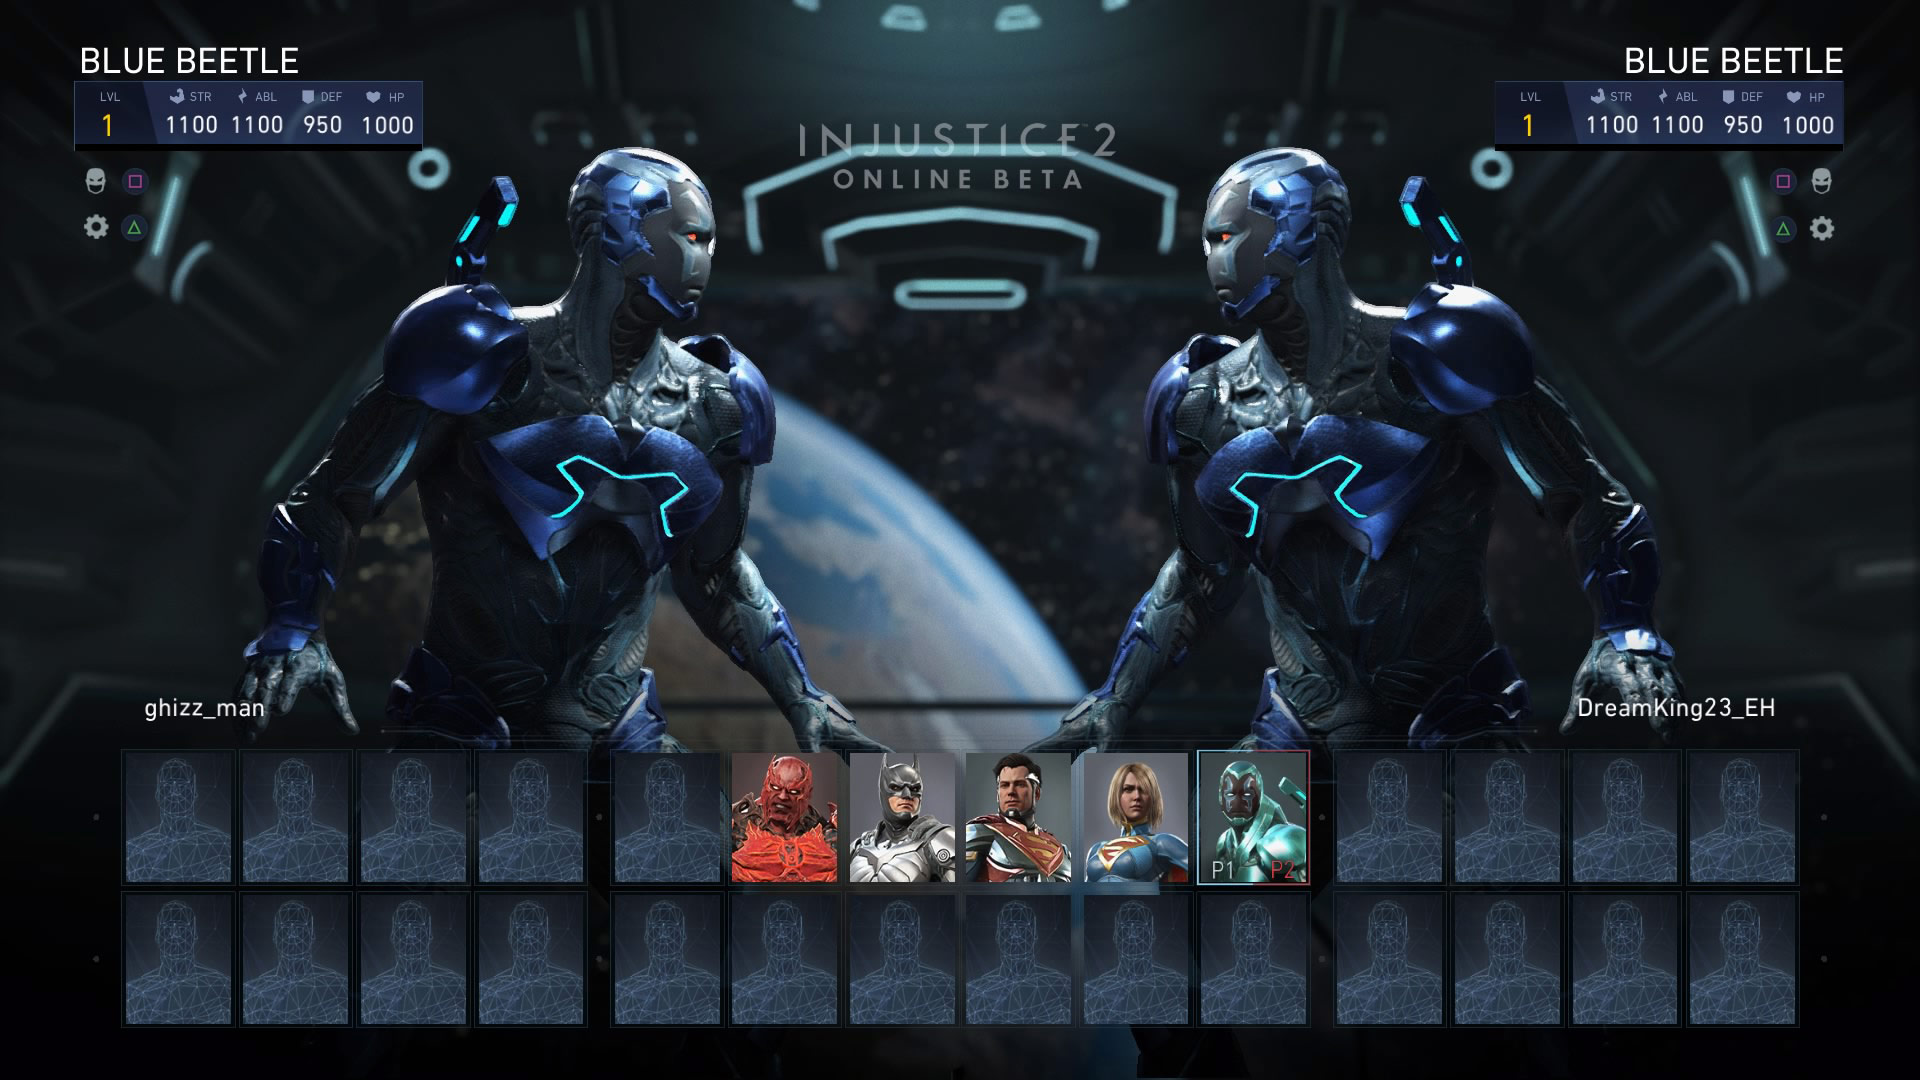 Blue Beetle in the Injustice 2 beta 3 out of 6 image gallery